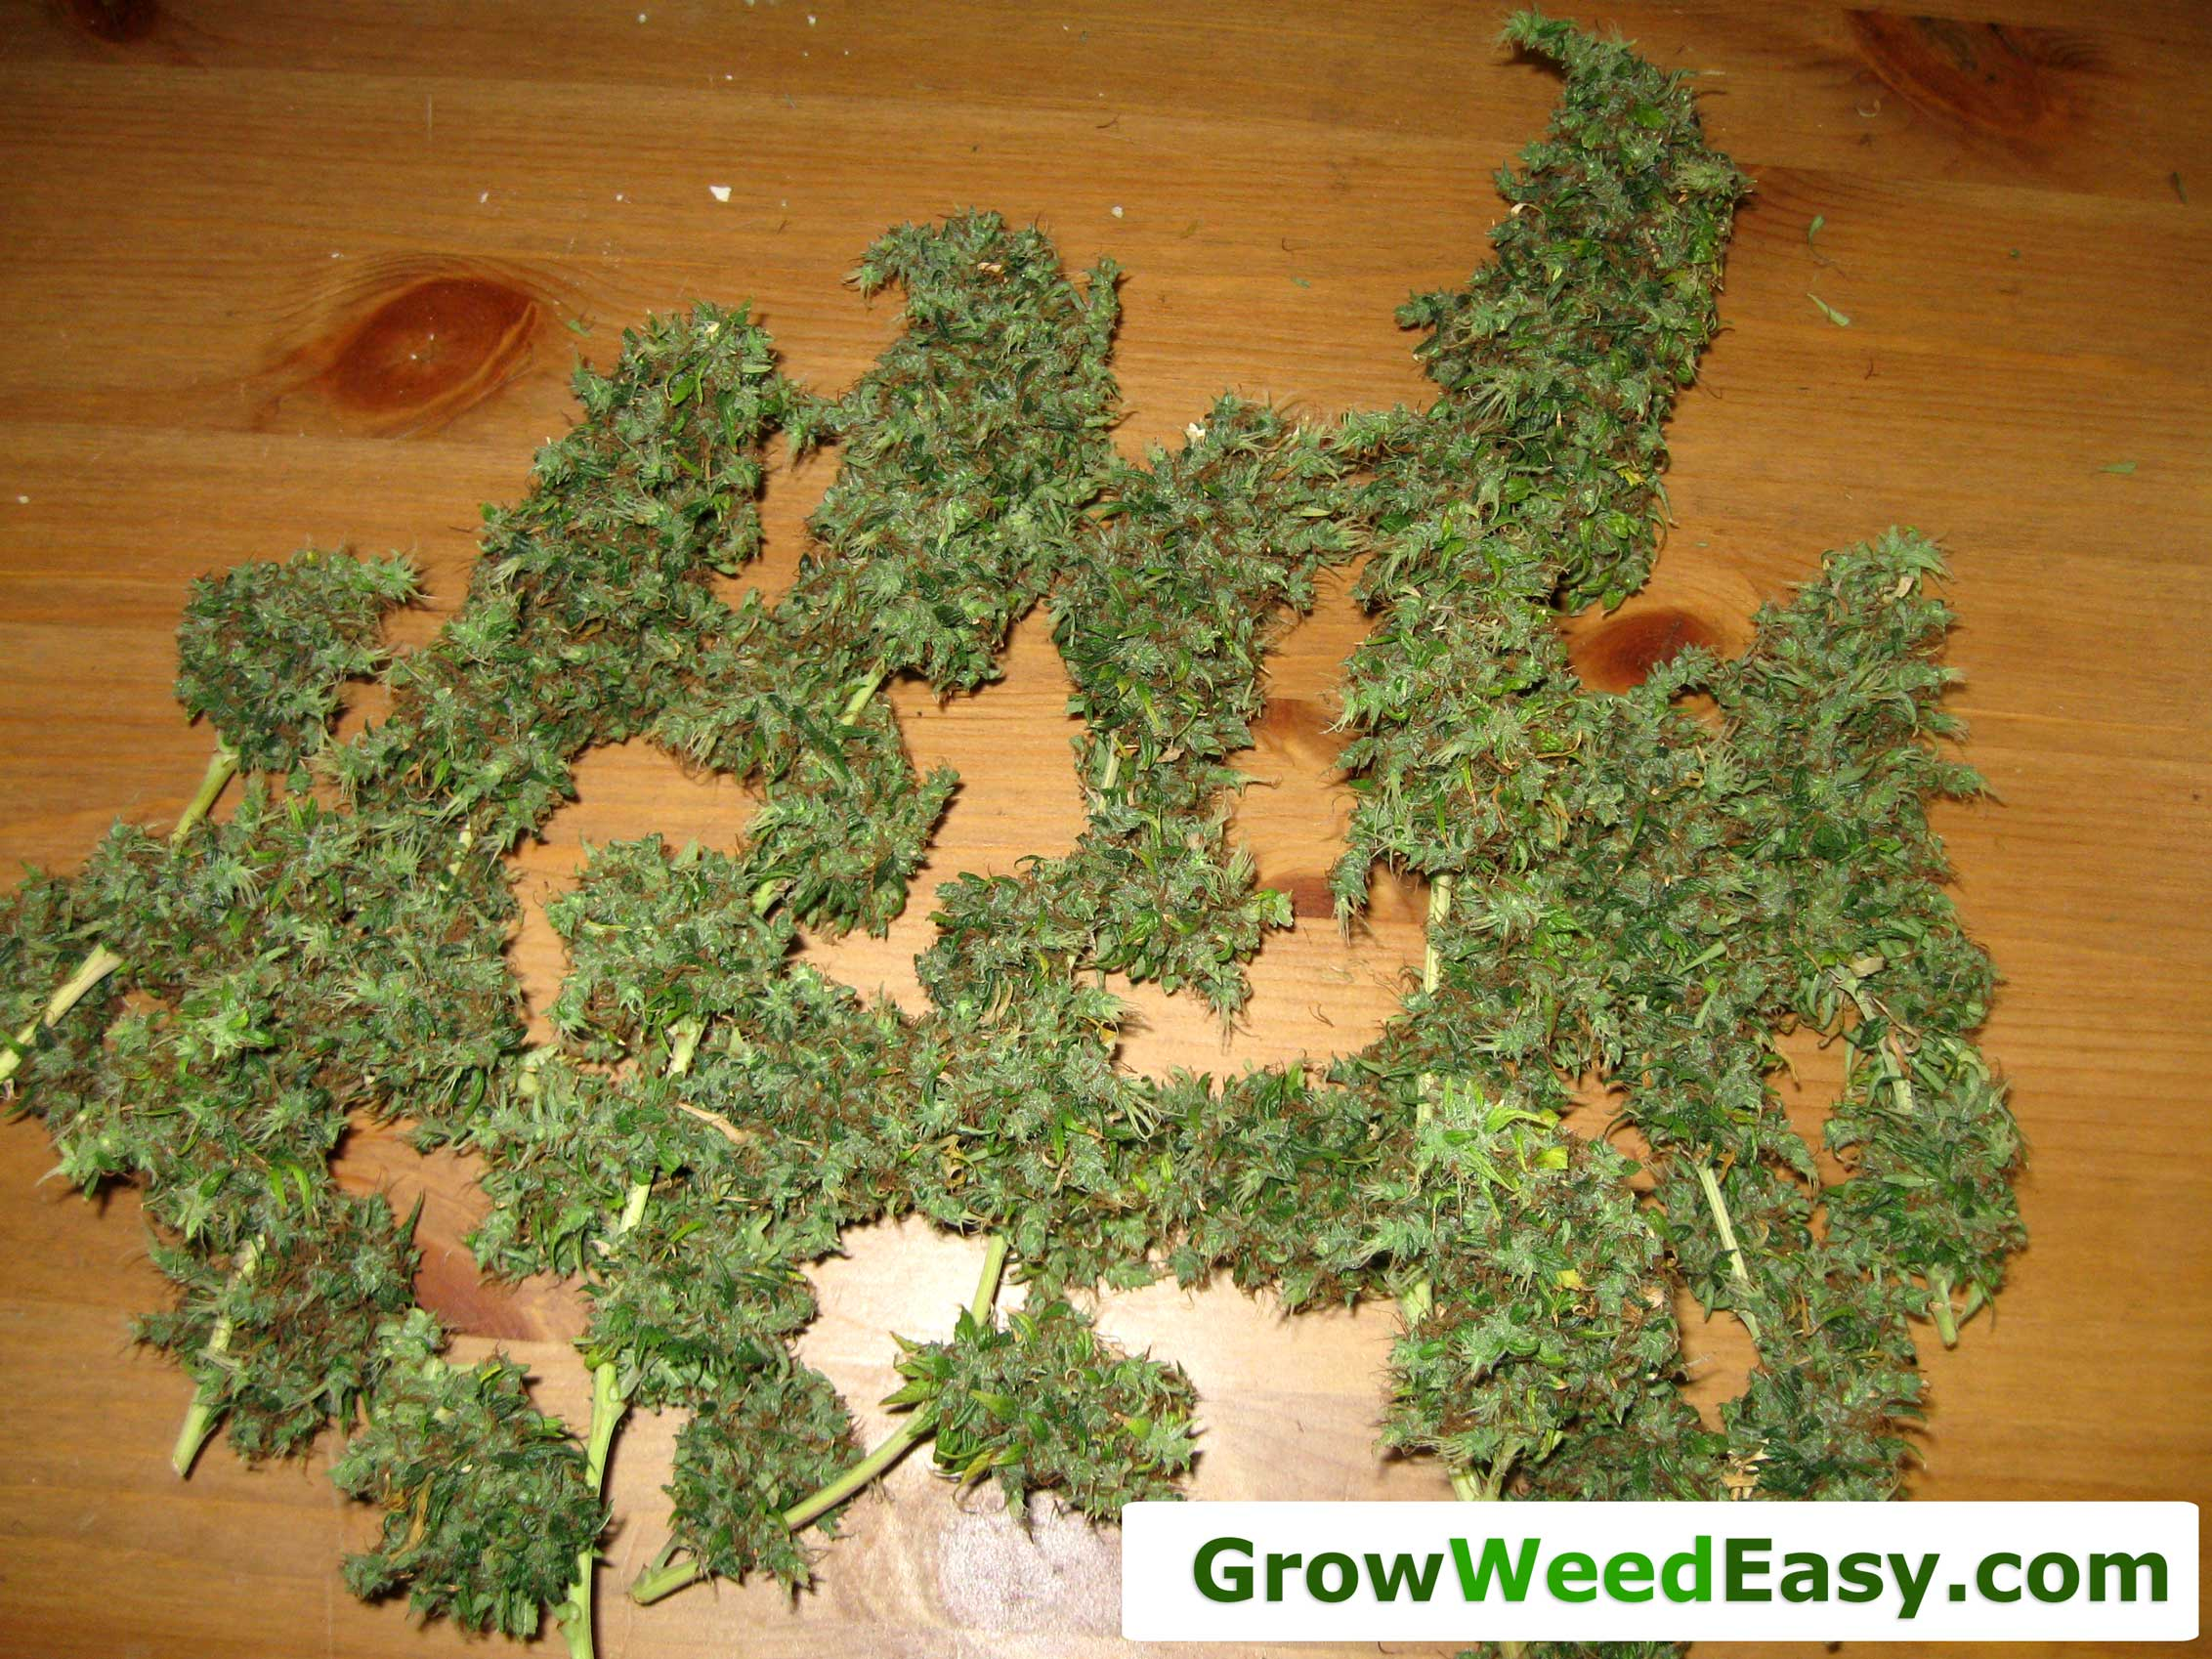 What Do I Need To Get Started Growing Cannabis Indoors Grow Weed Easy